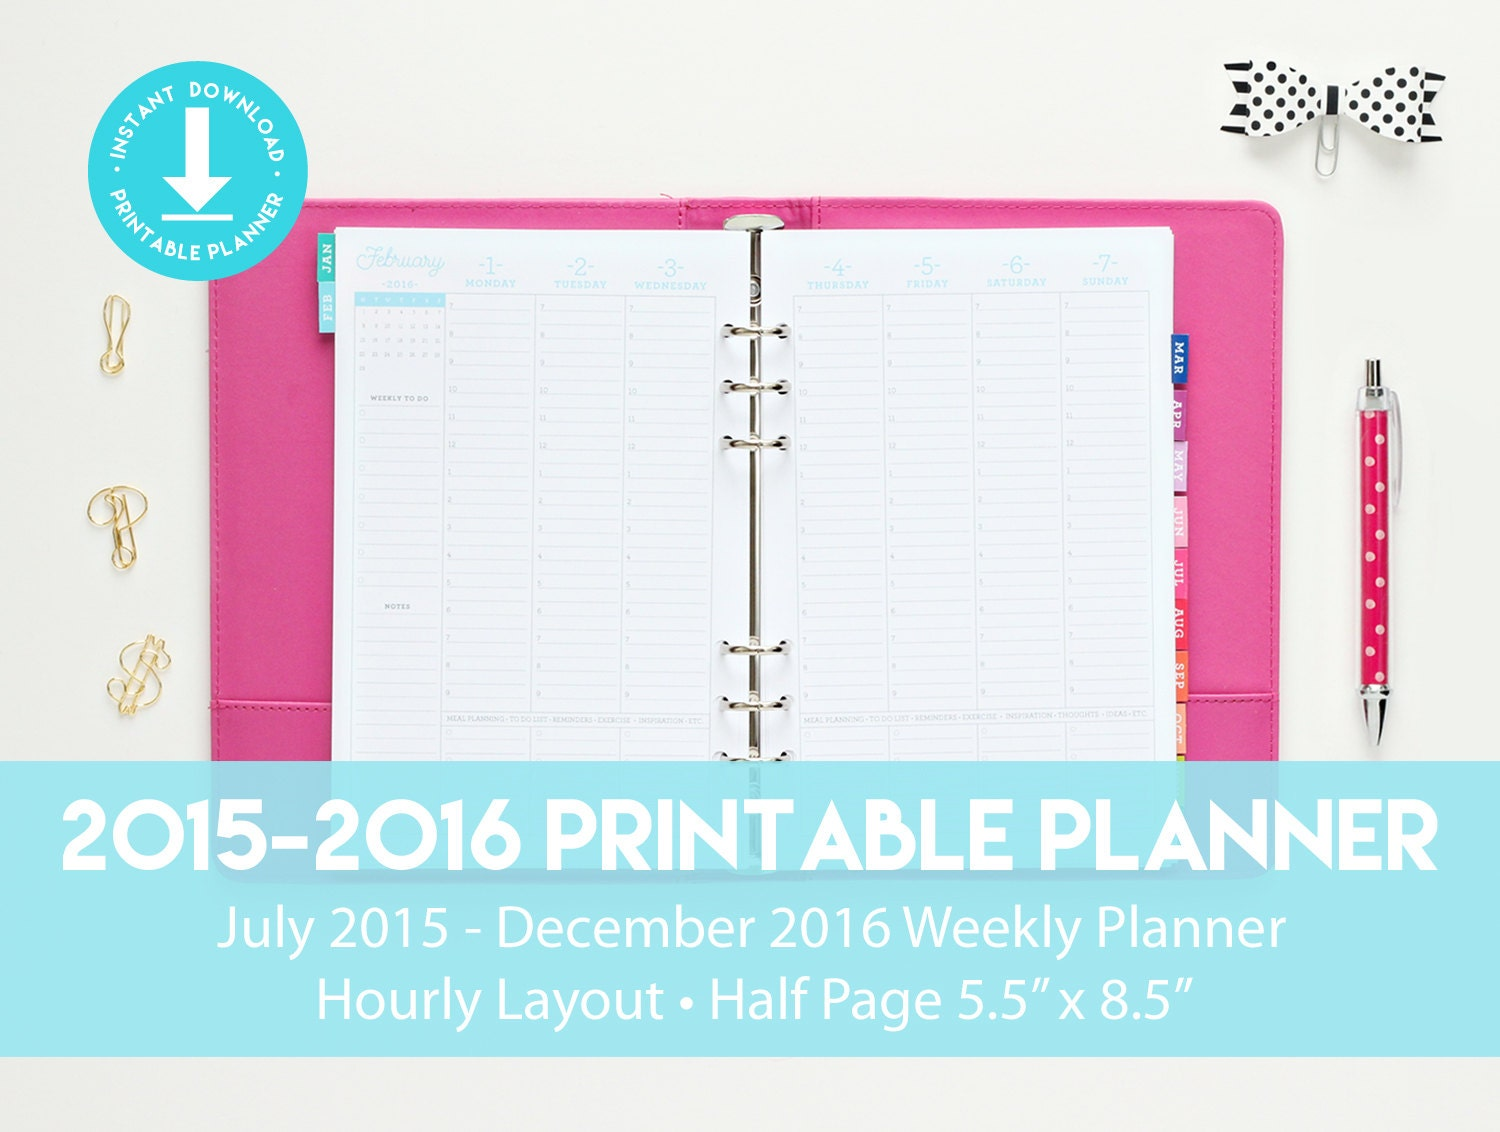 Printable Planner with Hourly Layout by PrintableStudio505 on Etsy